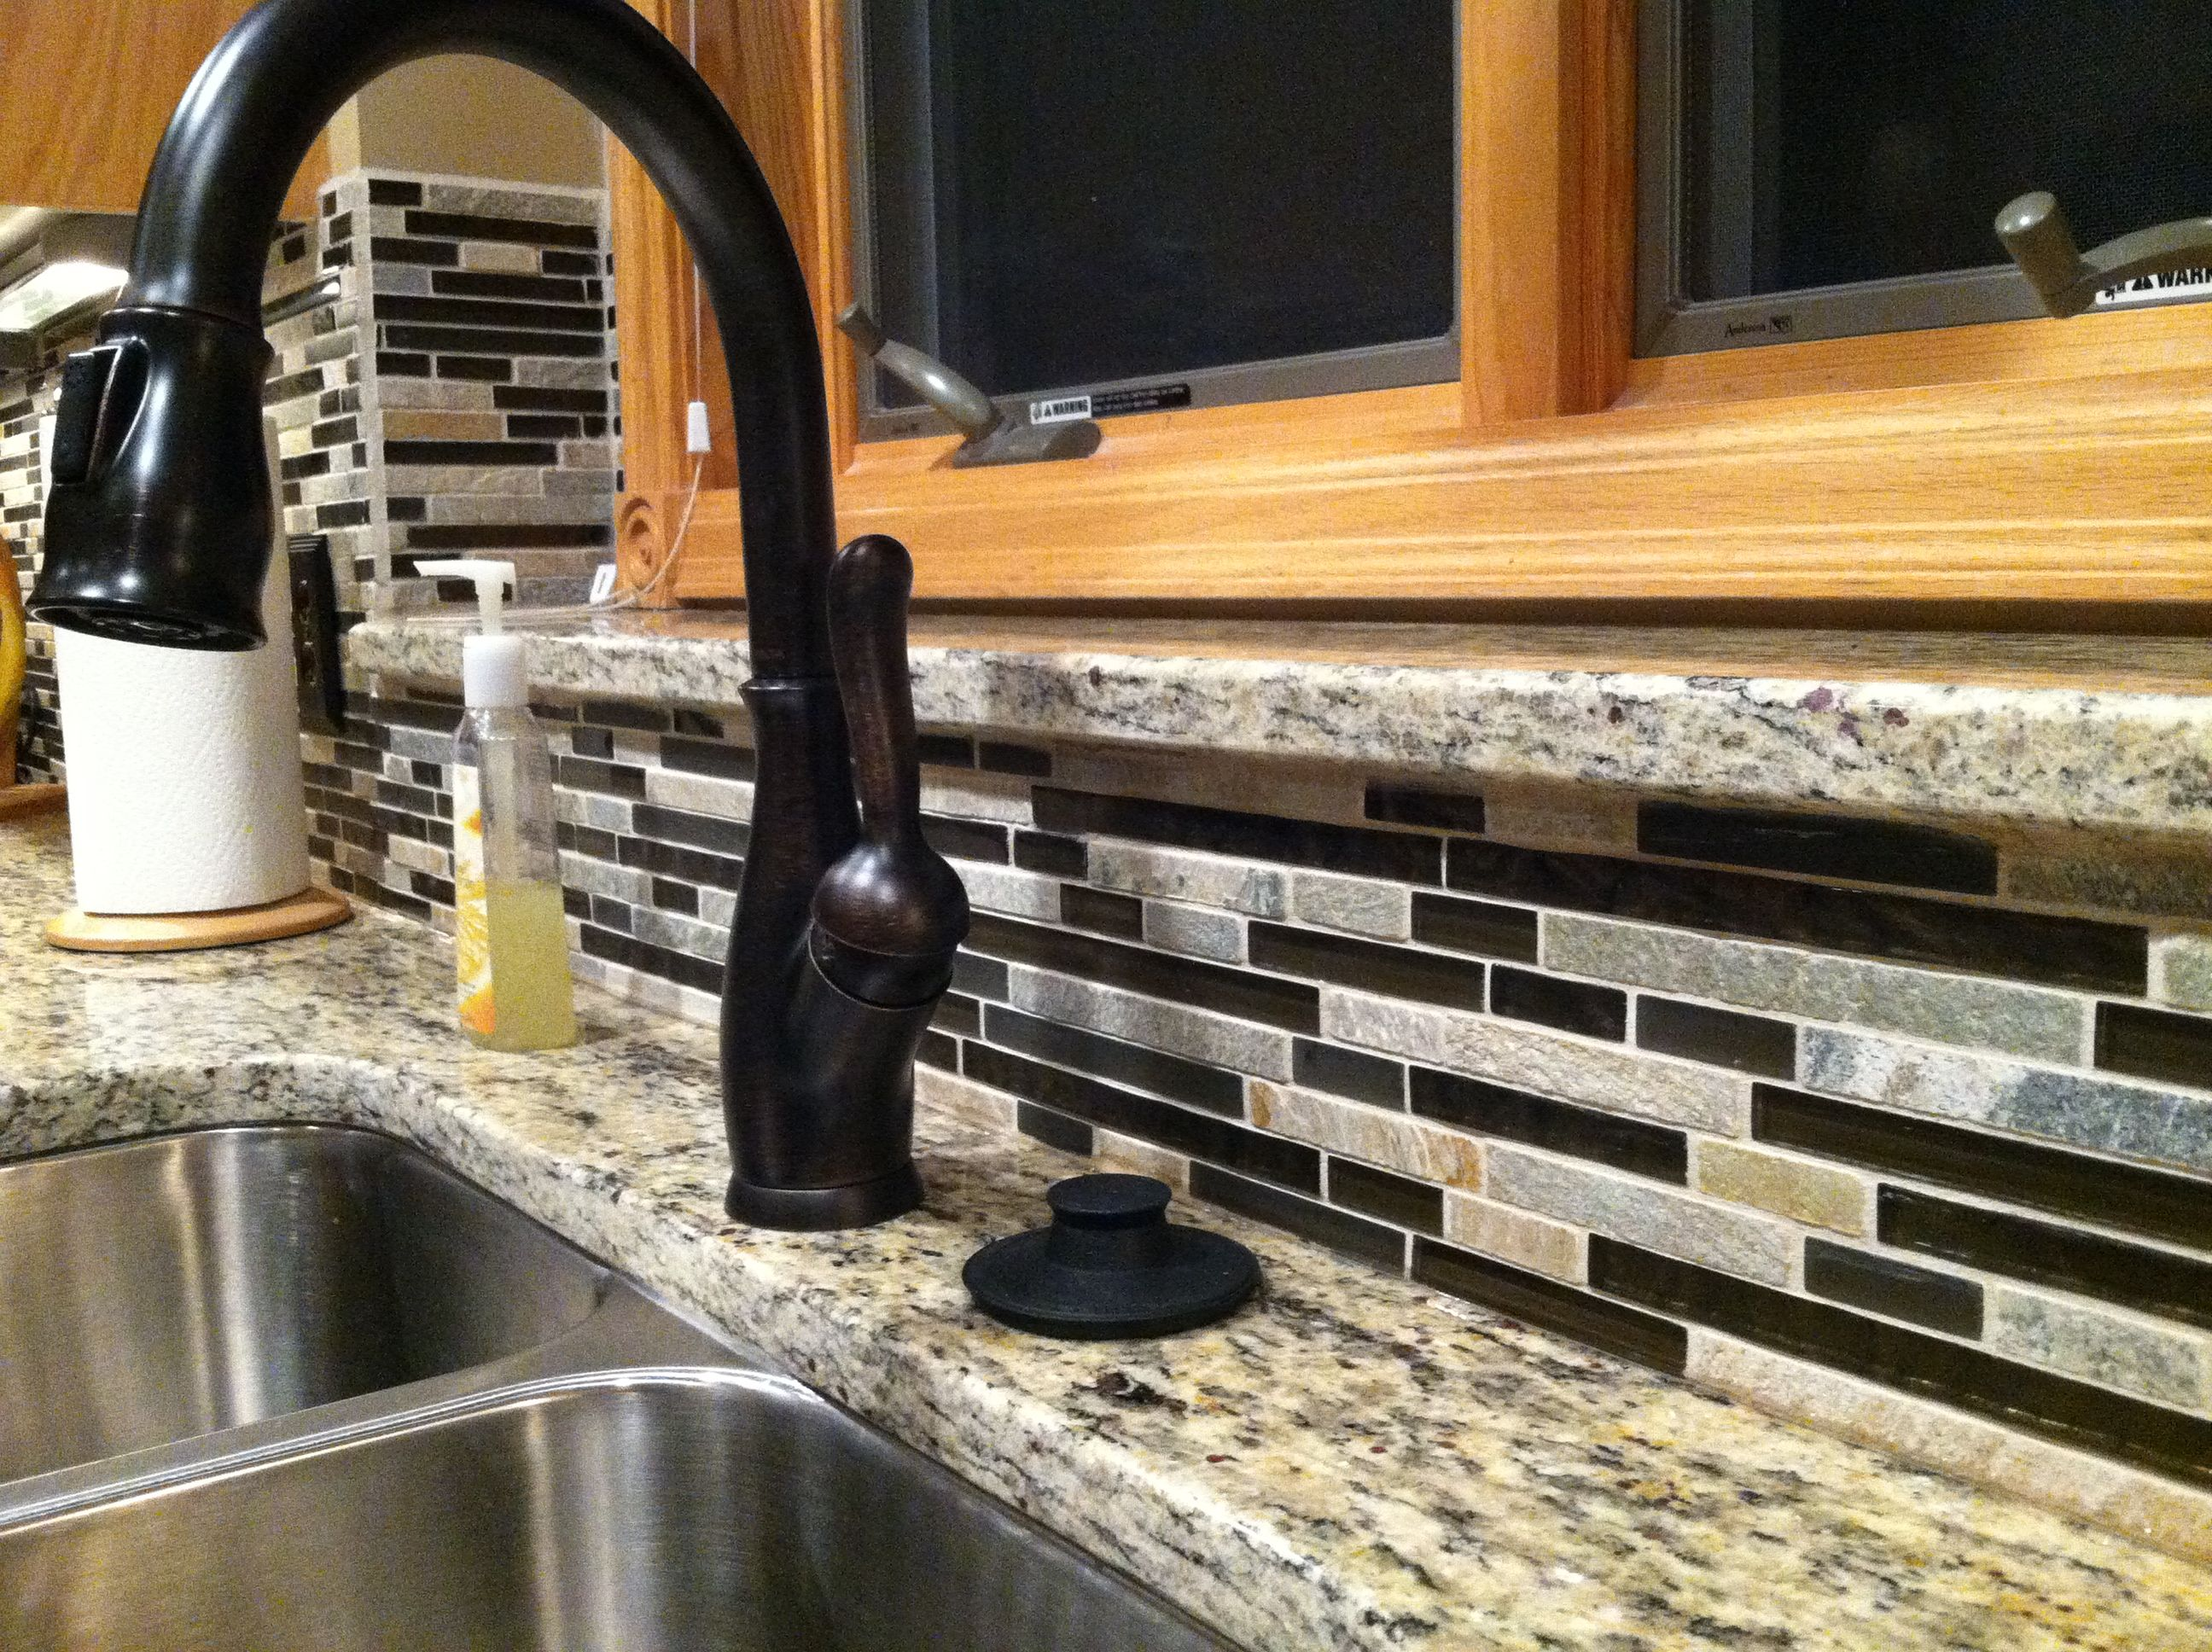 Kitchen Faucets For Granite Countertops Delta Oil Rubbed Bronze Faucet Backsplash Is Glass And